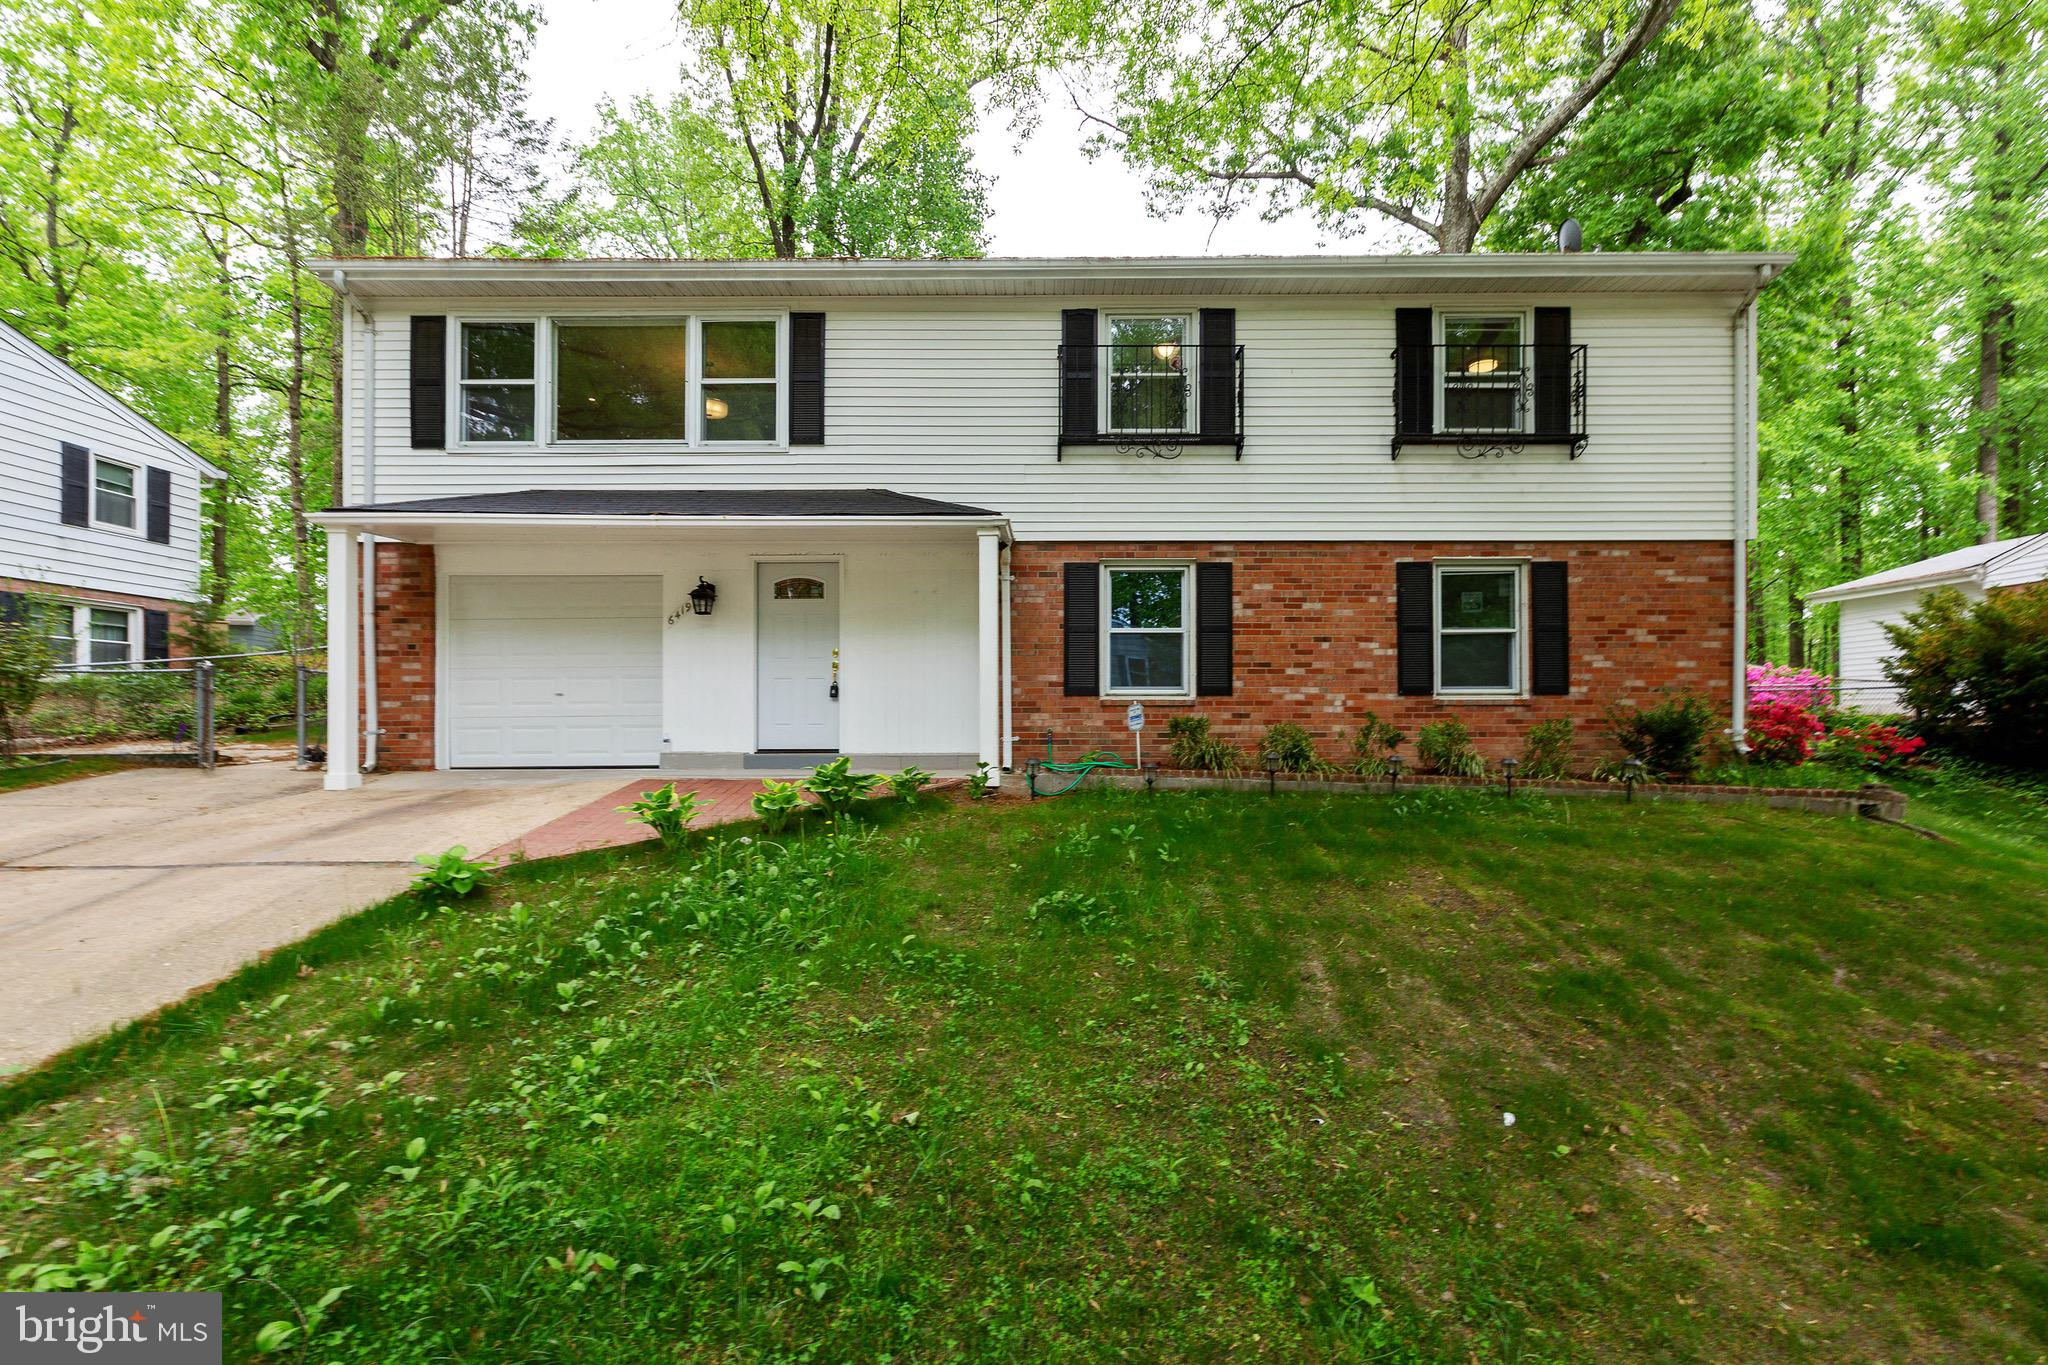 PRICE DROP! Bring your offers! Your suburban oasis awaits! Perfect location tucked in Rolling Valley just minutes to commuter routes but also far enough away from the hustle and bustle to be your perfect retreat. Lovingly renovated with chic finishes throughout the three full bathrooms and expansive kitchen with beautiful natural stone countertops and stainless steel appliances. Three generous bedrooms on the upper level include the large master with en-suite full bath. Downstairs the flexible layout offers bedrooms, a family room and garage with optional bedroom or workshop. Fenced rear yard is perfect for summer cookouts, backyard sports and playing ball with your favorite pup! Welcome home!